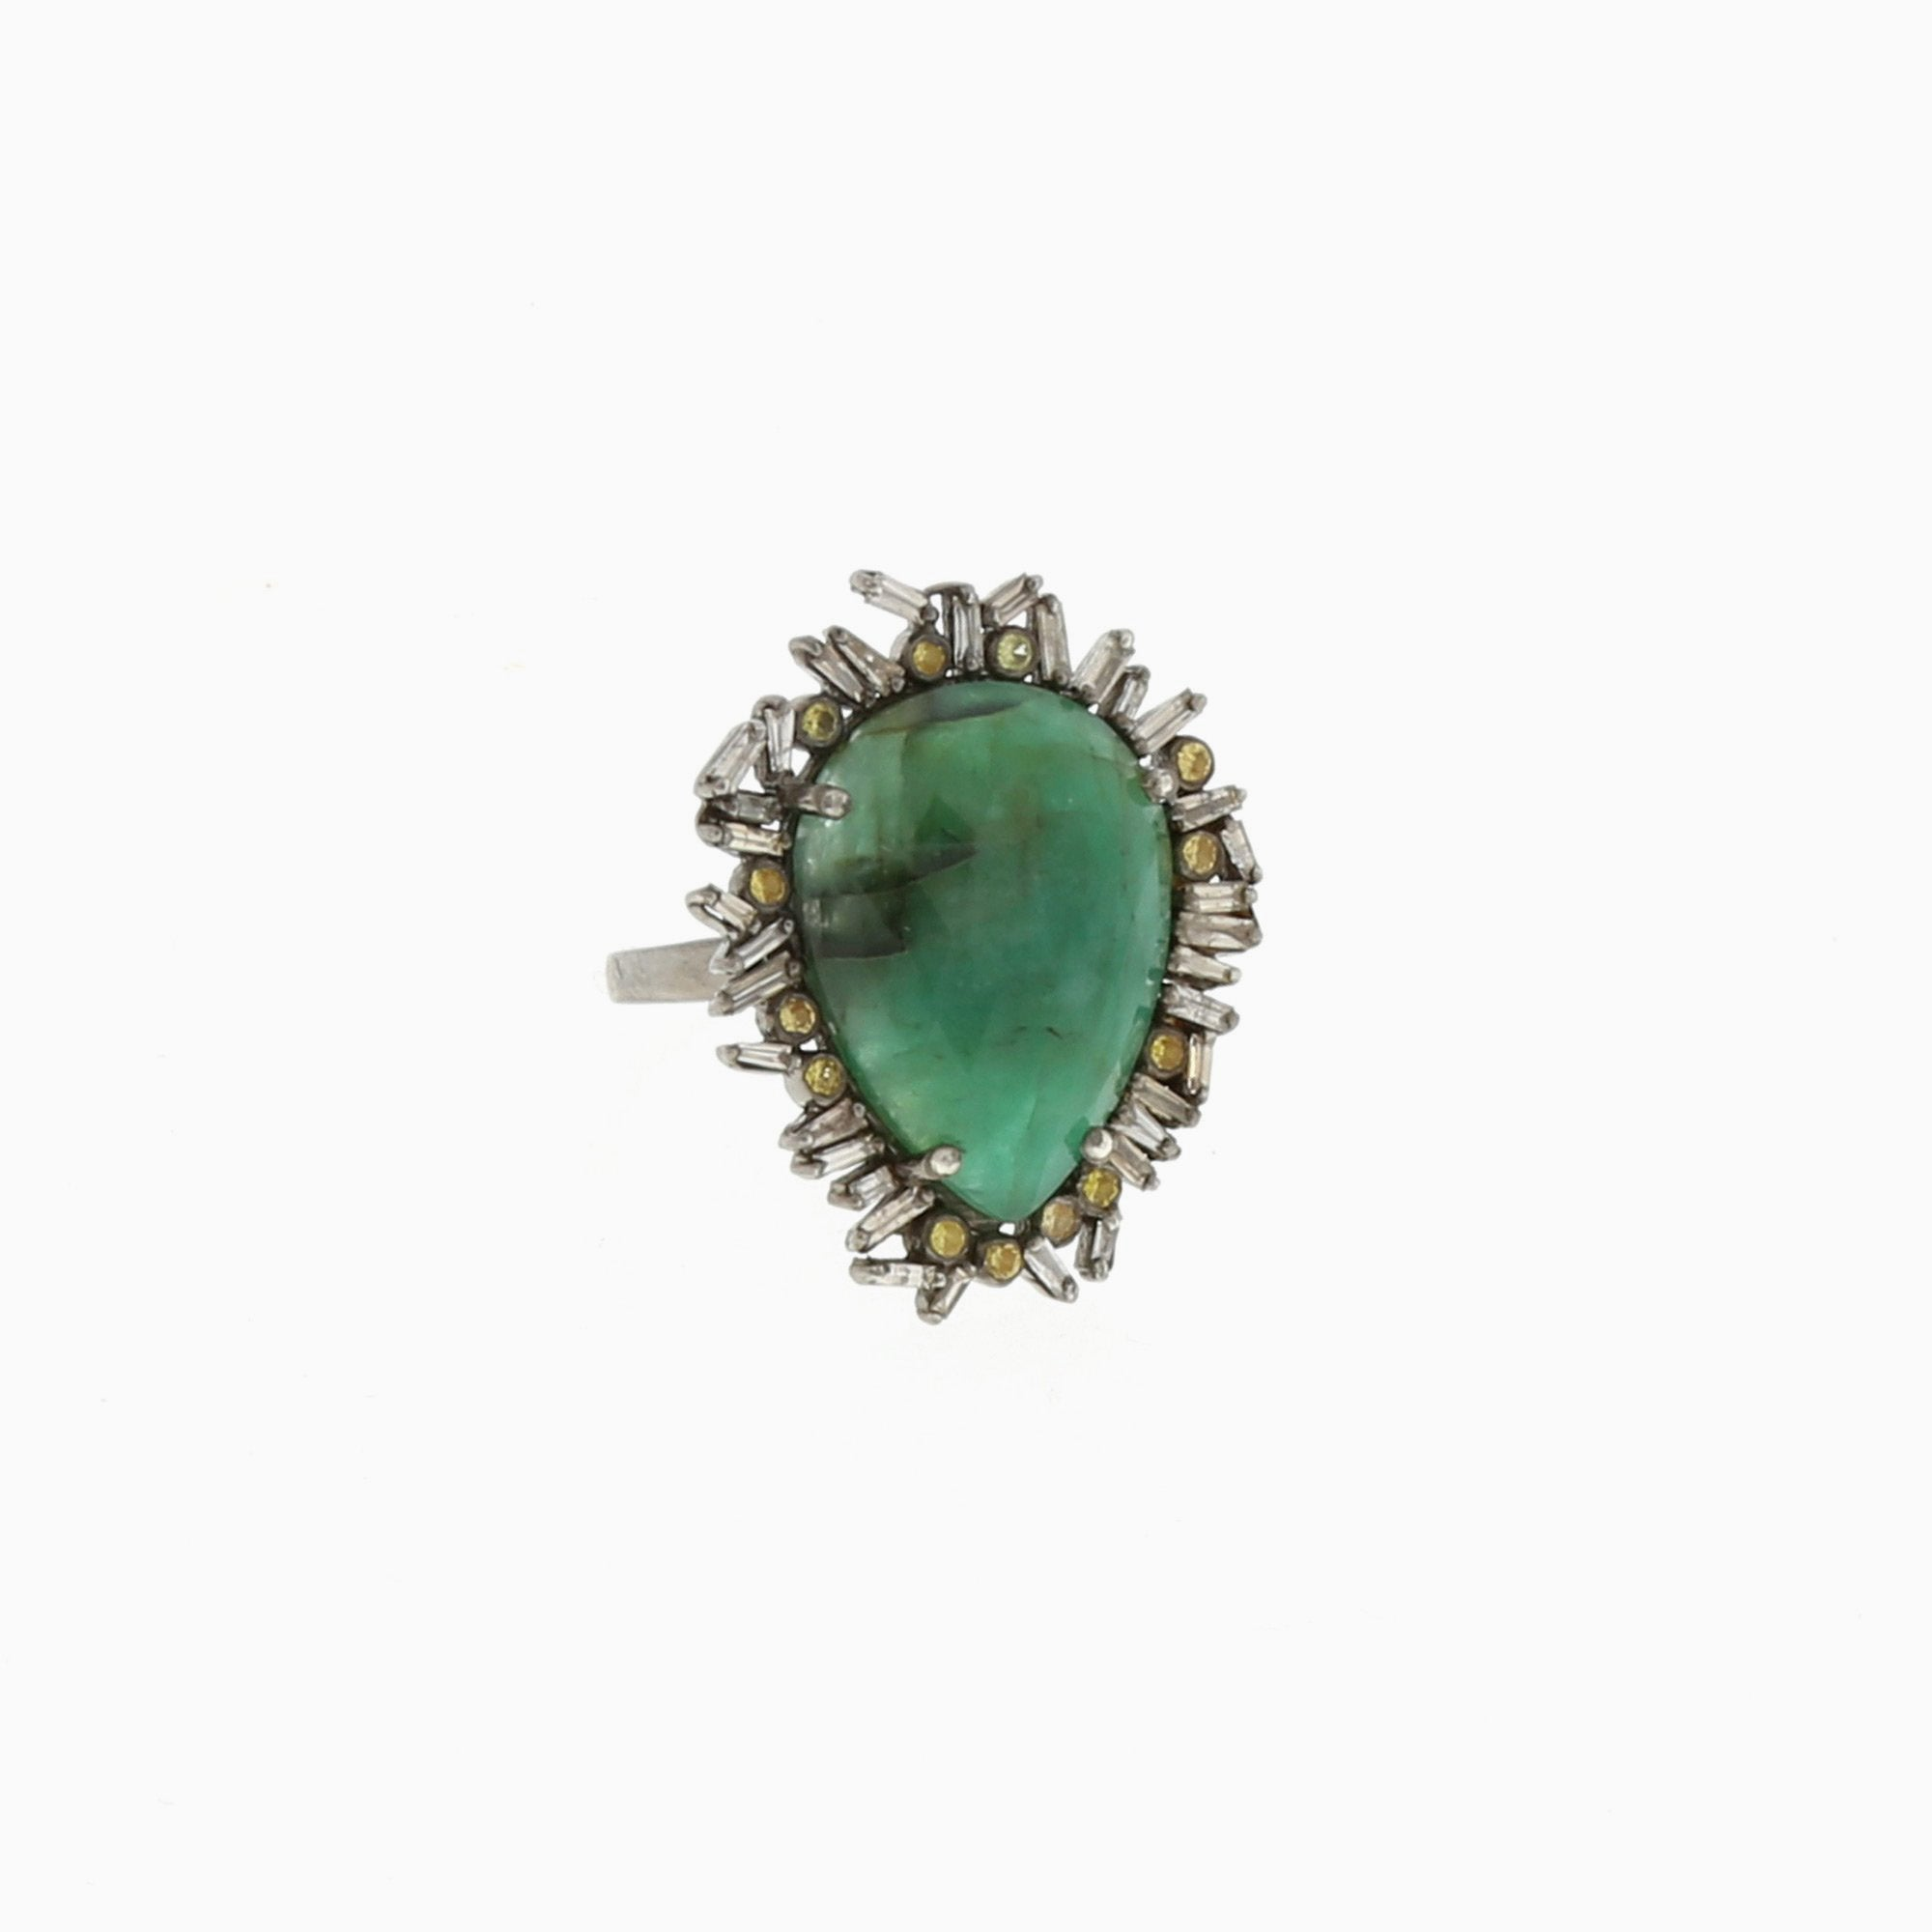 shank with silhouette rings and cut emerald stone platinum green three uneek emeral ring center in pave